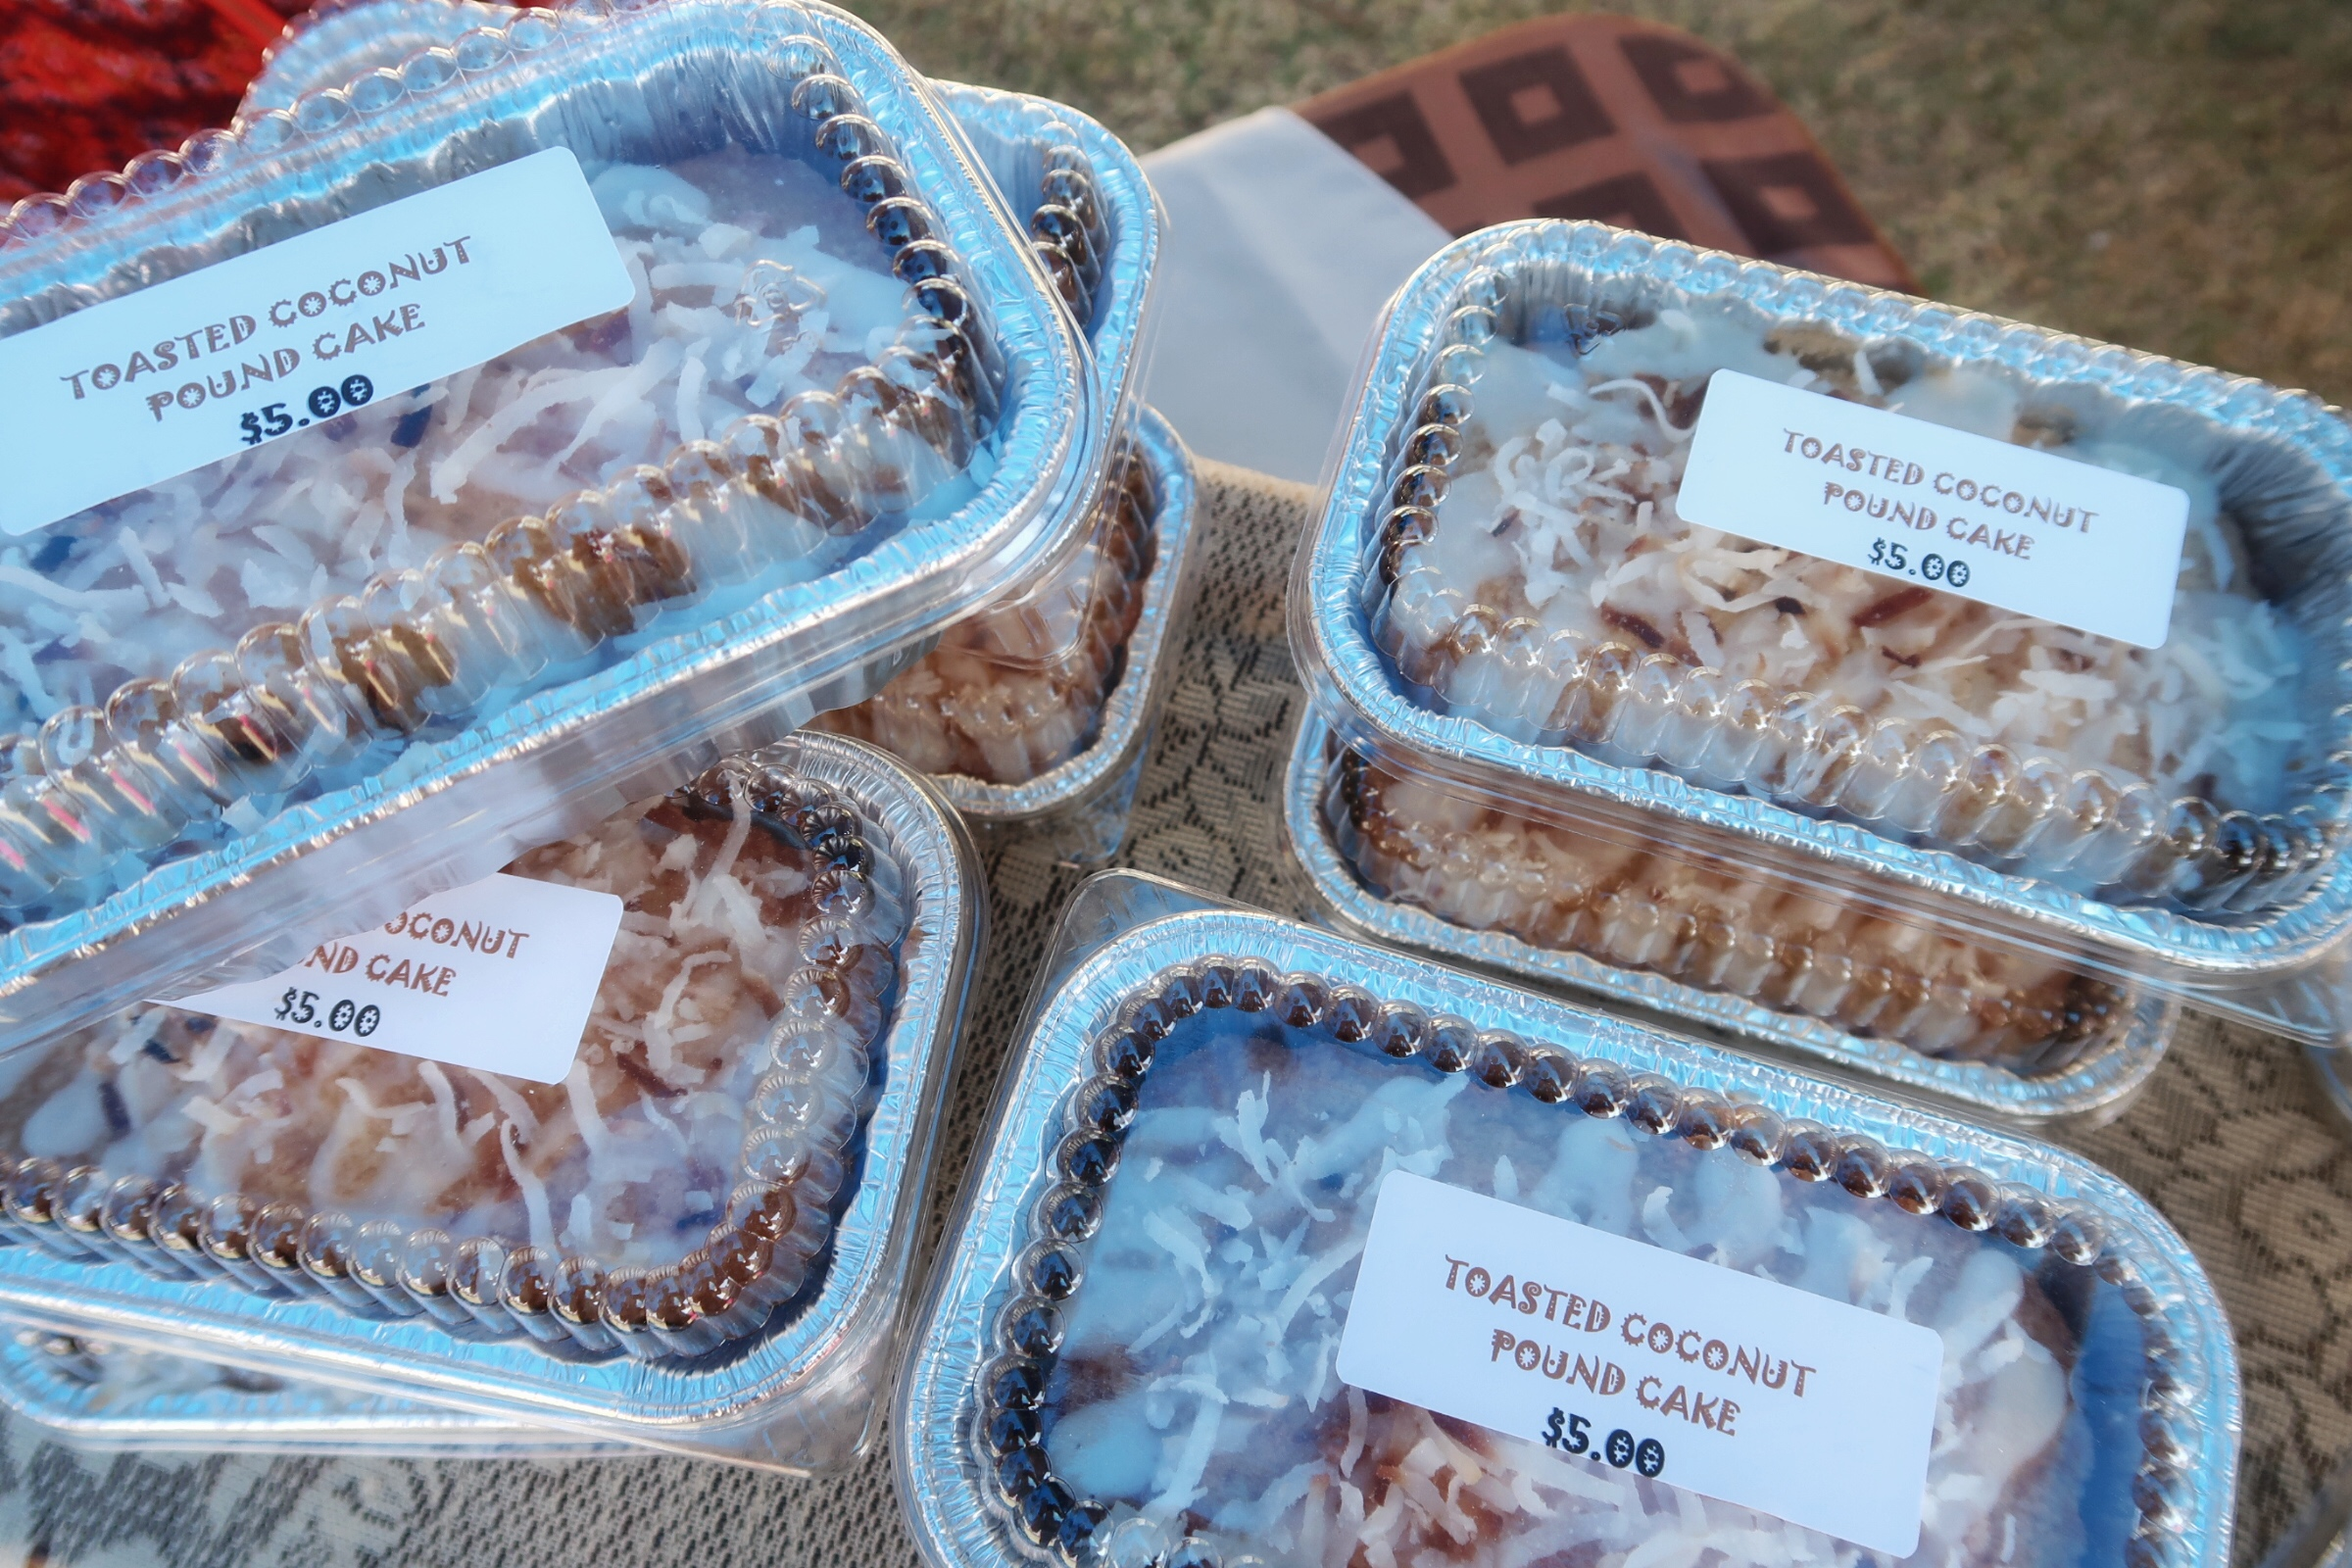 Carol Braggs of  Sweet As Can B  e's  winning Toasted Coconut Pound Cake.  Check them out at the George Town Farmer's Market!